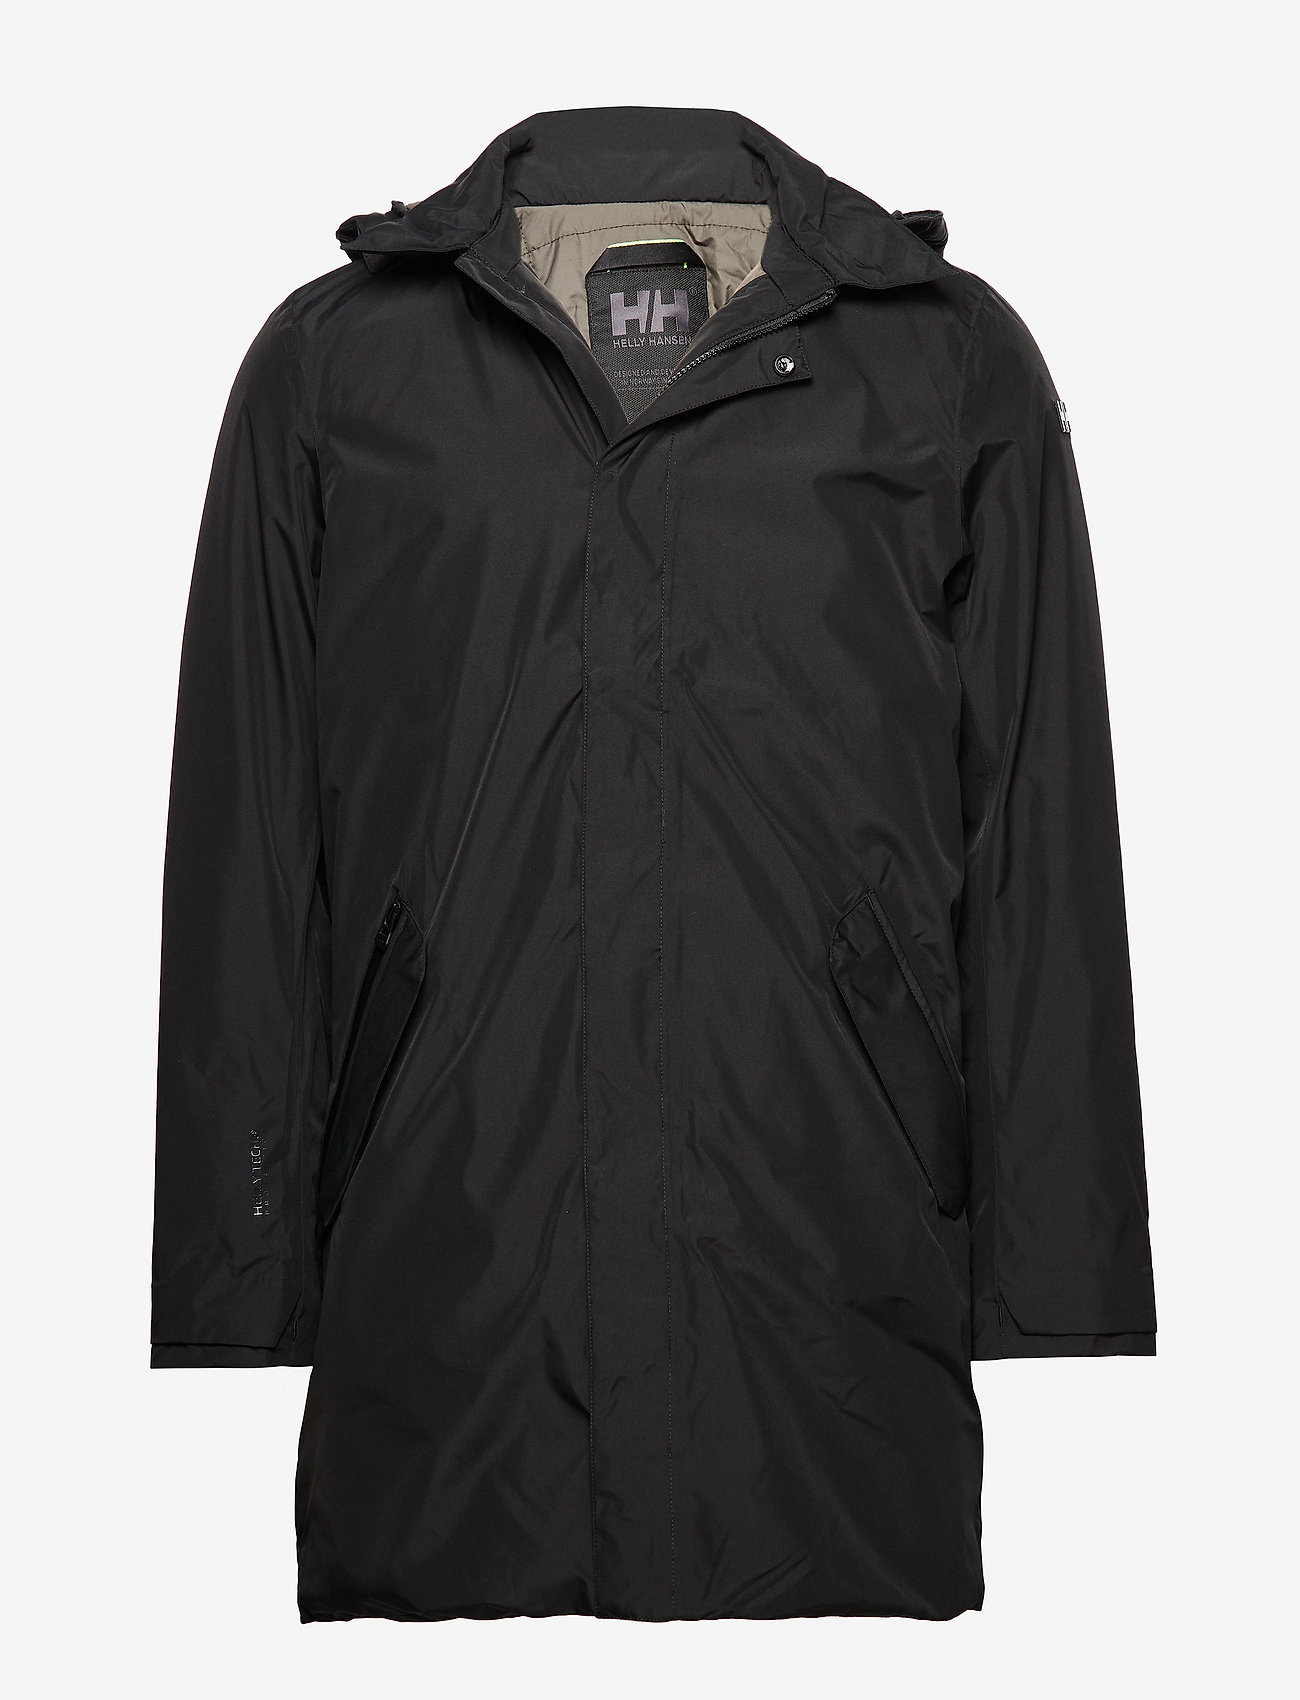 Oslo Padded Coat (Black) - Helly Hansen 8KdQQy